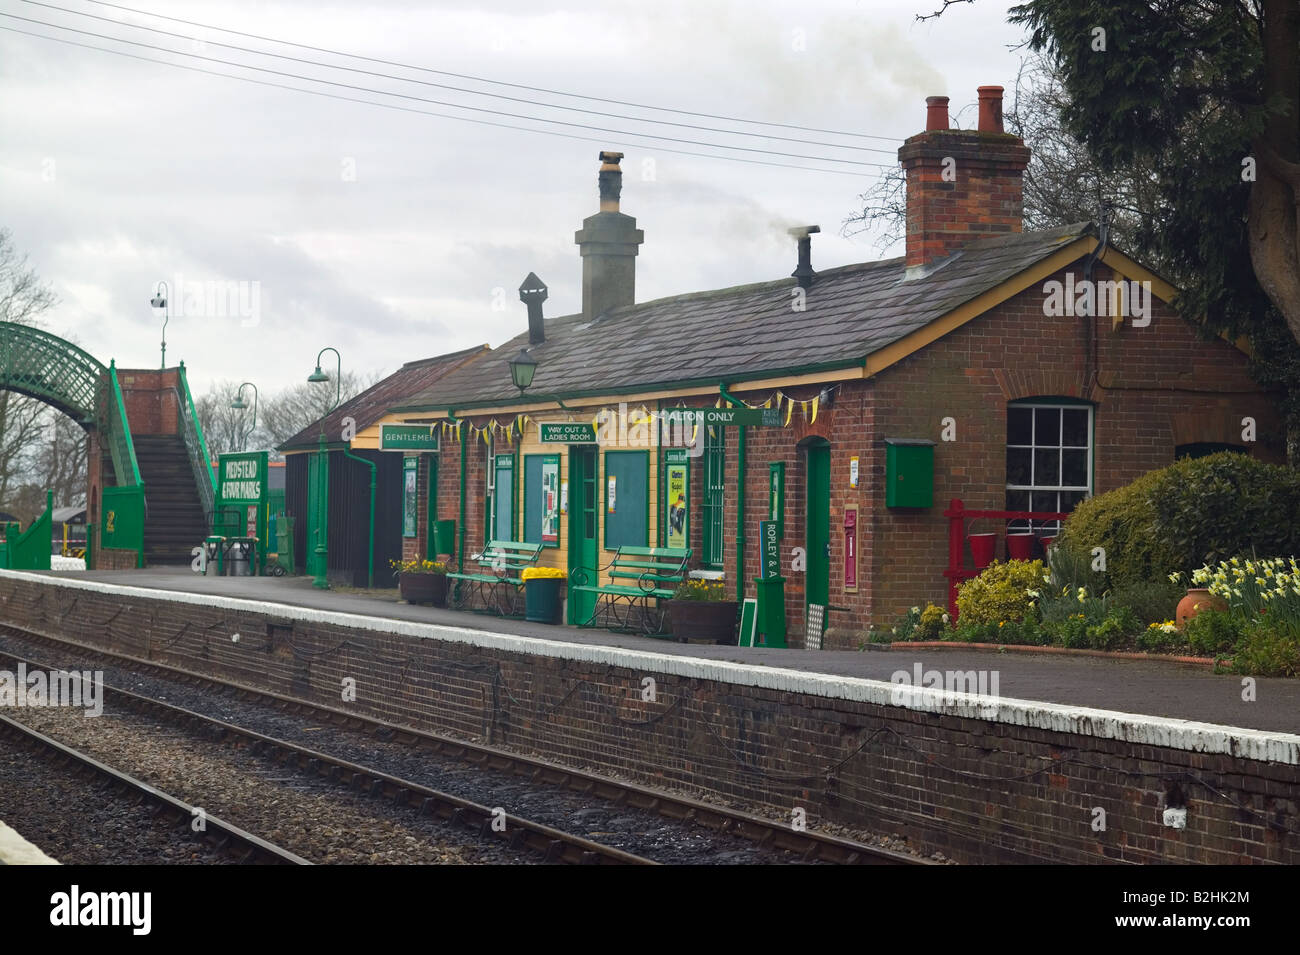 Medstead and Four Marks railway station part of the Watercress Line which is a line dedicated to steam trains Stock Photo